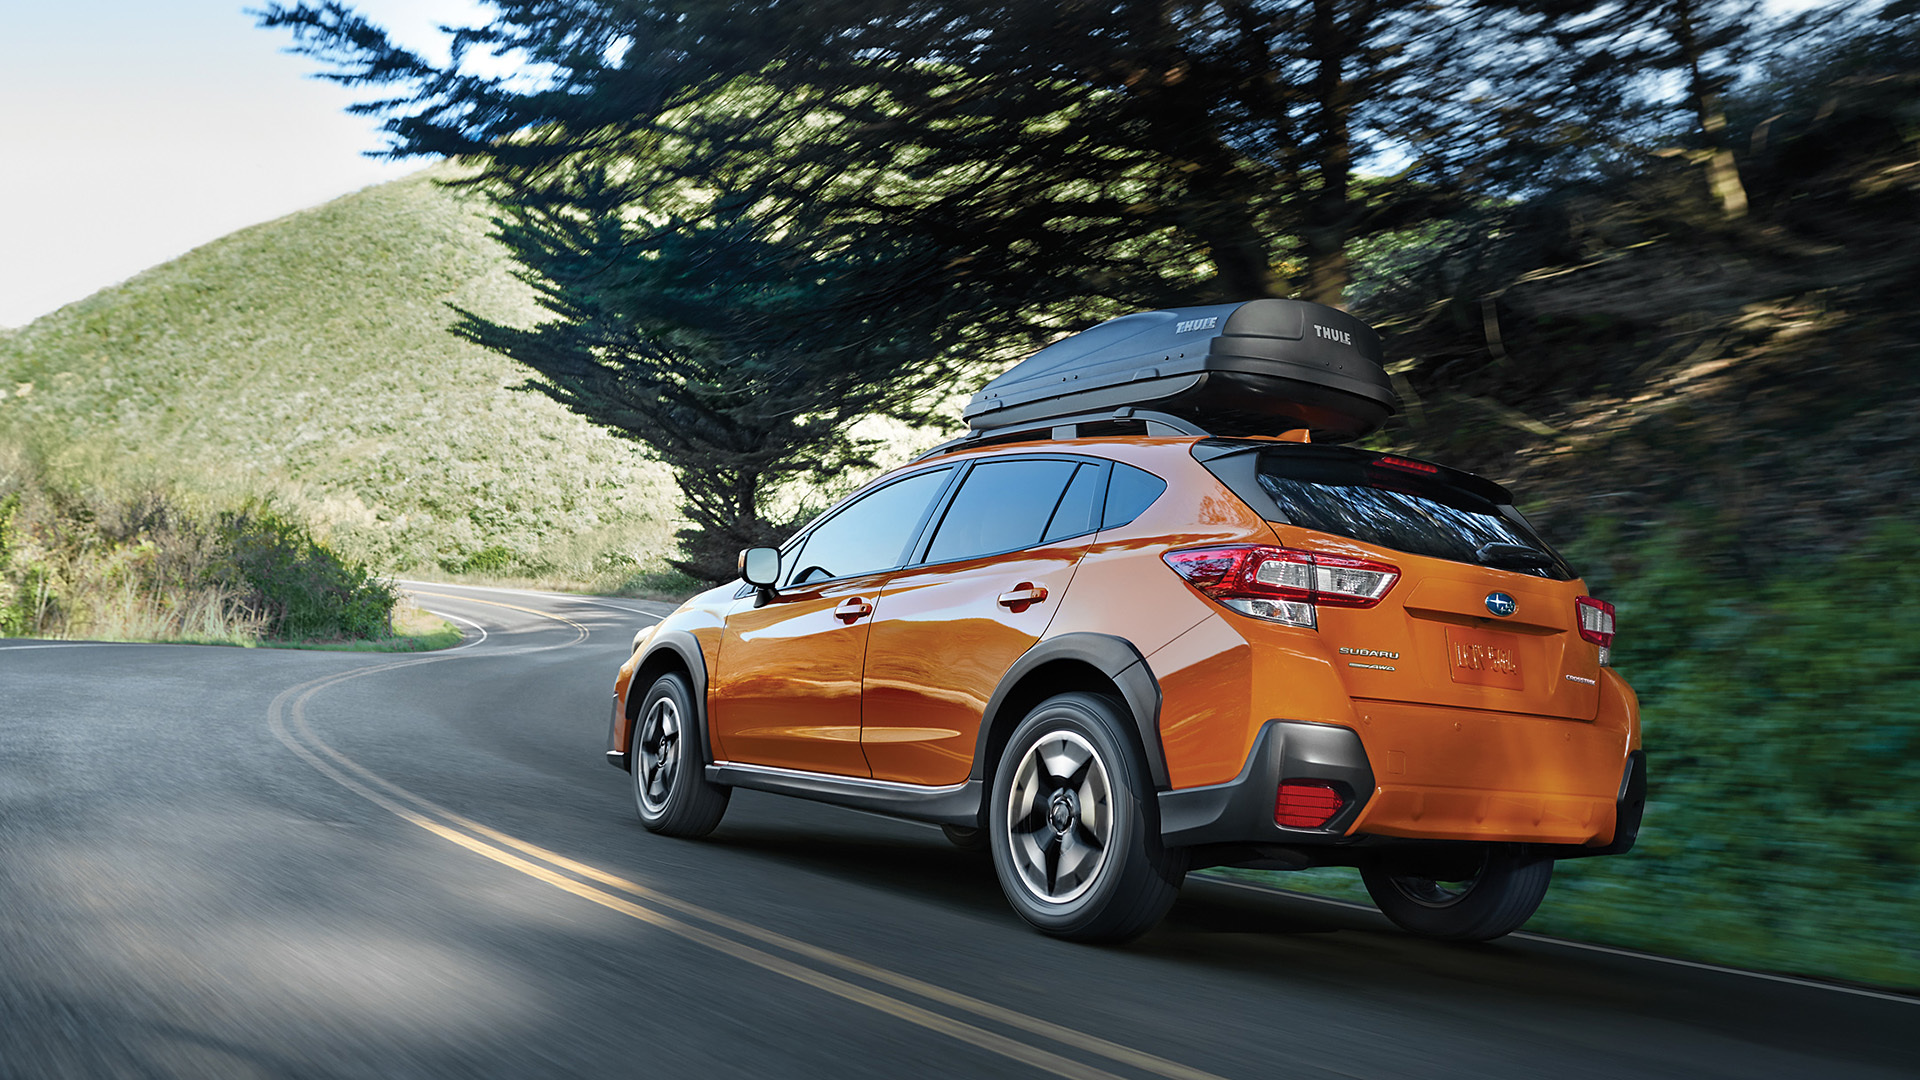 2019 Subaru Crosstrek buyer's guide with specs, safety, reviews, and